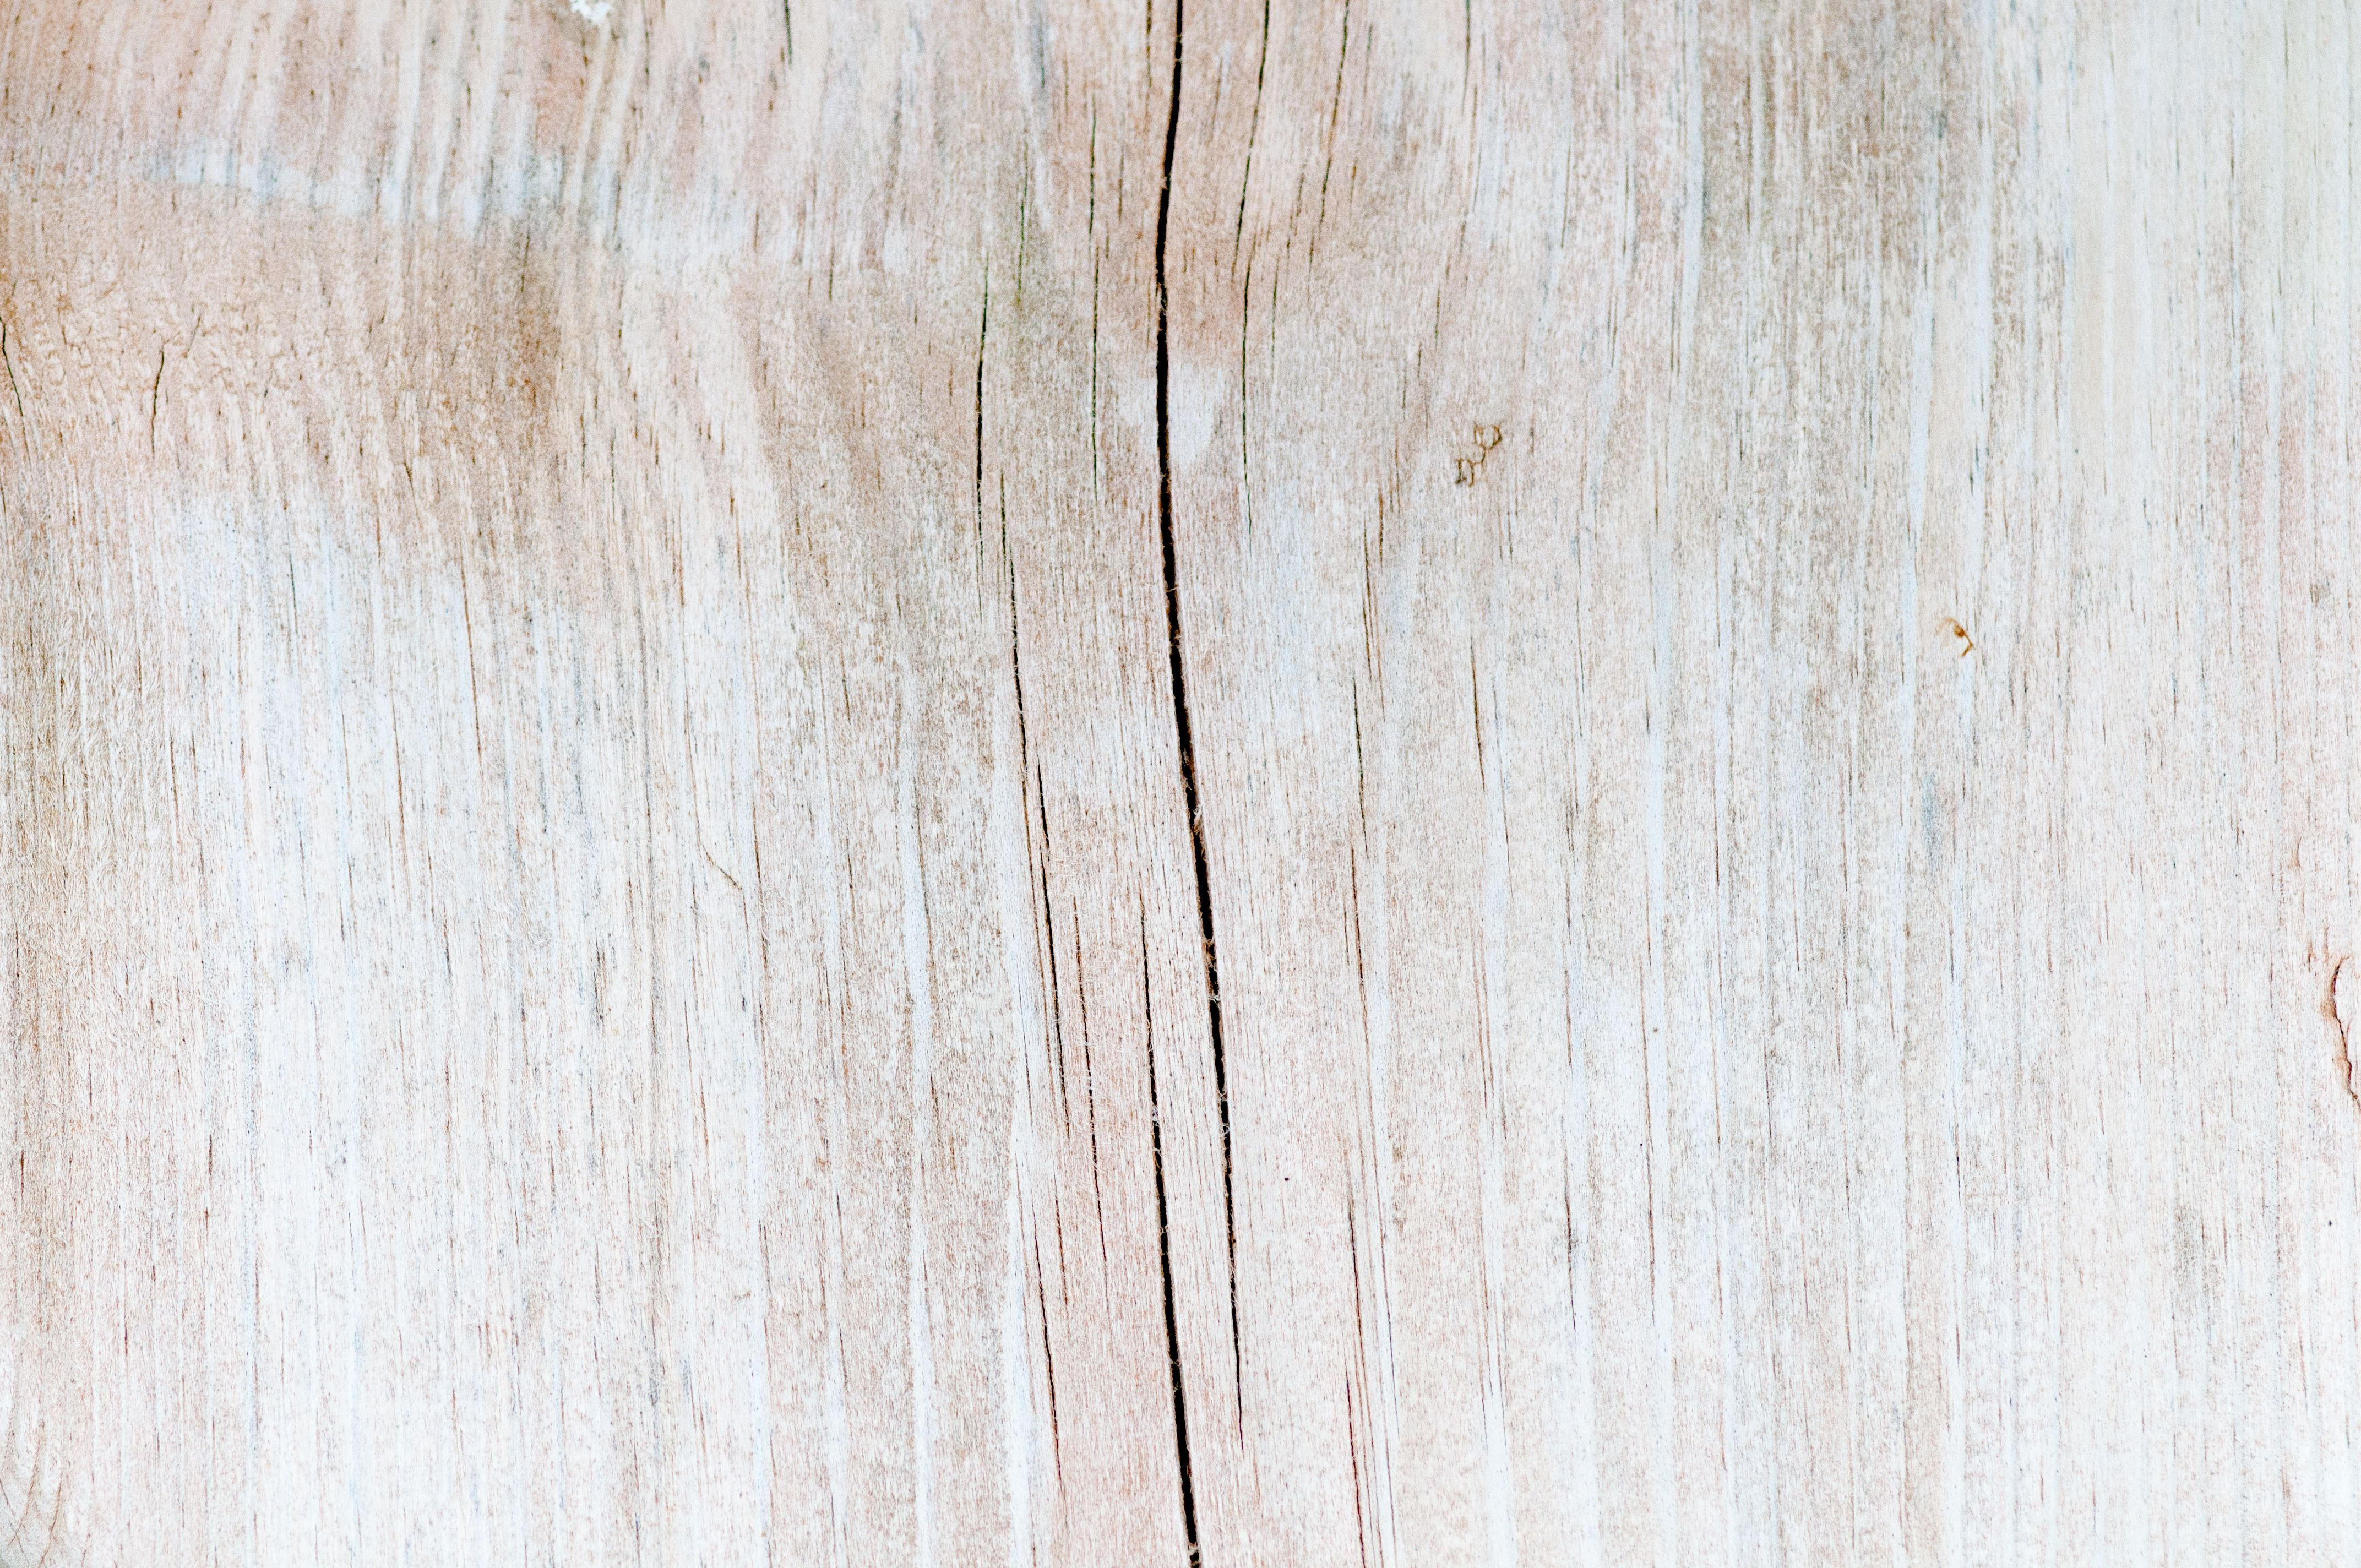 Free texture light wood wood new lugher texture - Old Wood Planks Google Re Wood Pinterest Wood Planks And Woods